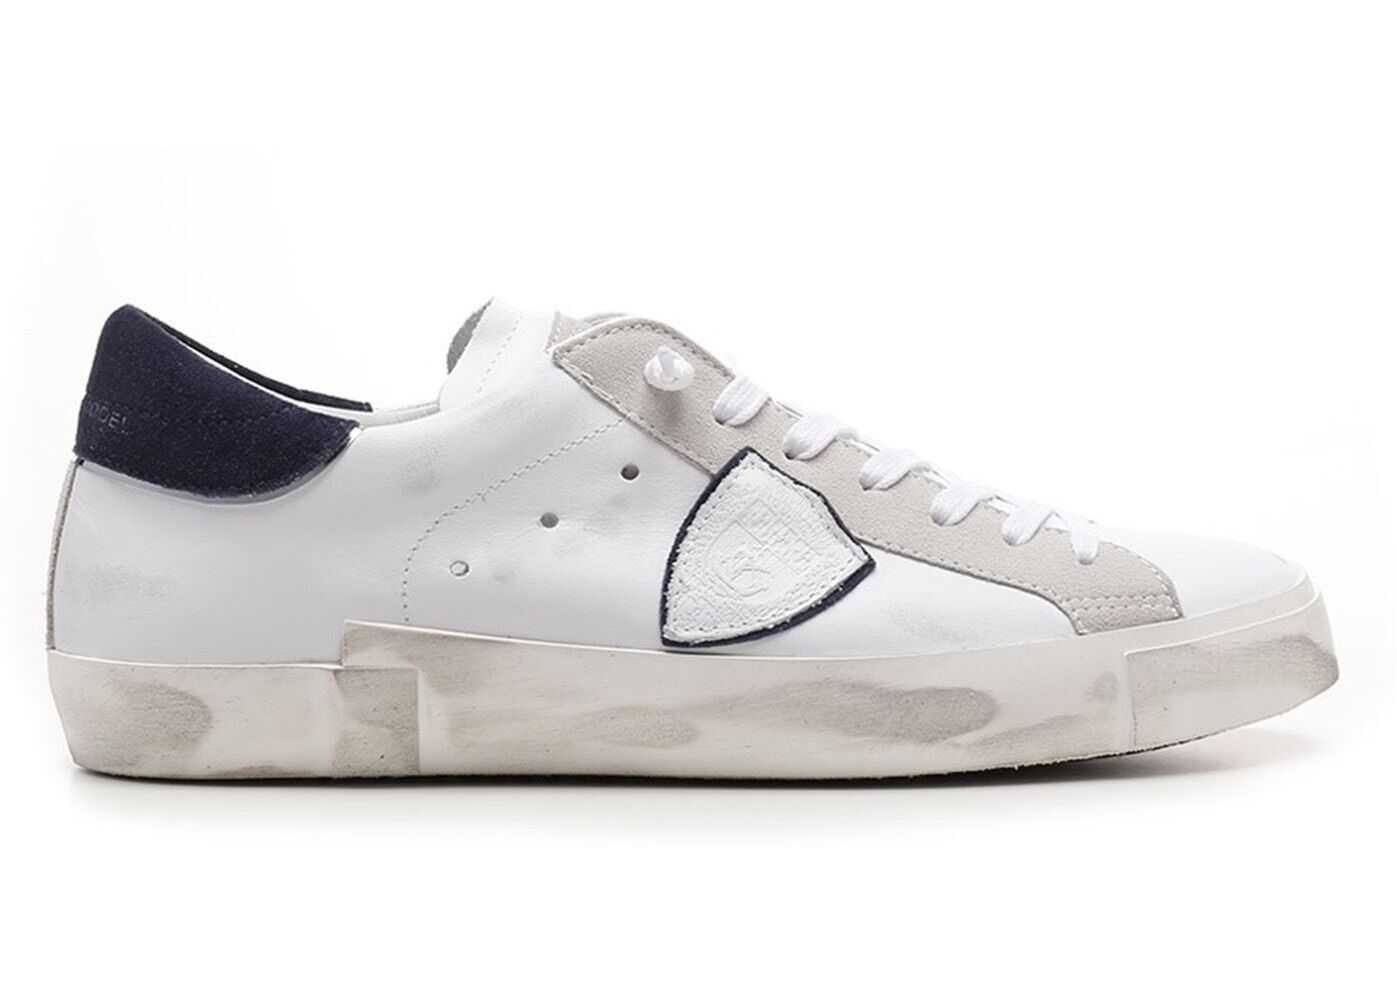 Philippe Model Branded Leather Sneakers In White PRLUVX22 White imagine b-mall.ro